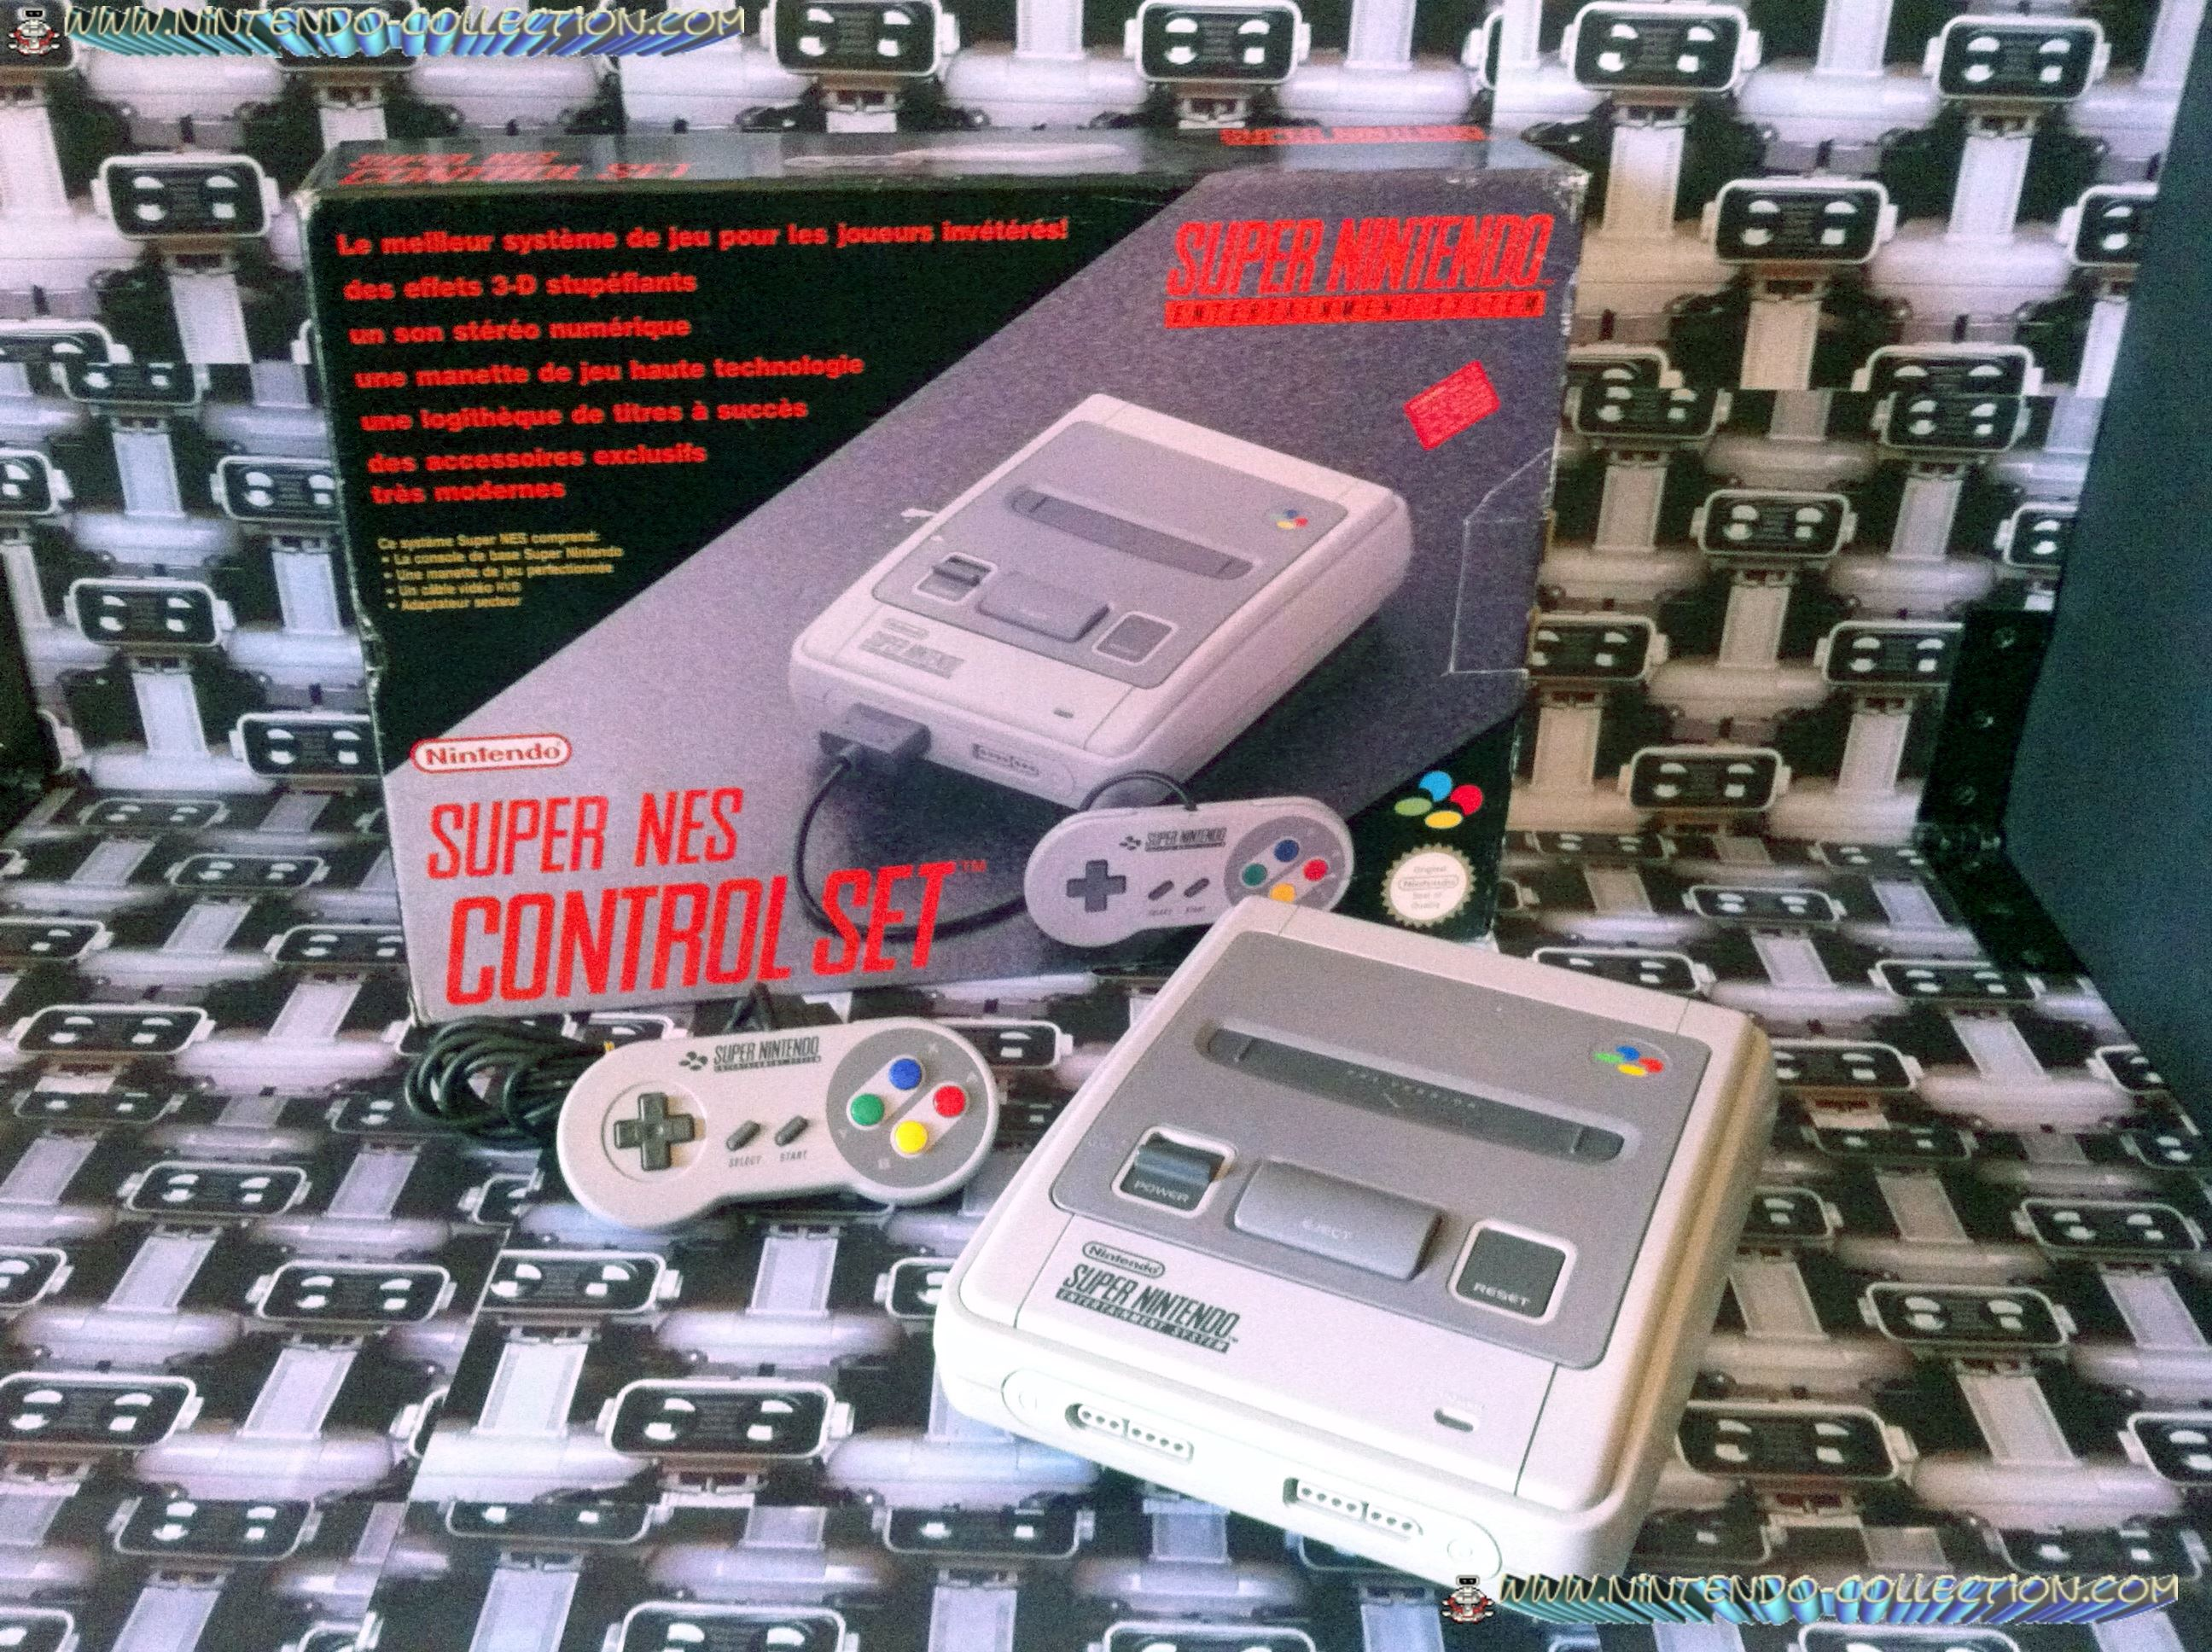 www.nintendo-collection.com - Super Nintendo Super Famicom Super Nes Pack Control Set